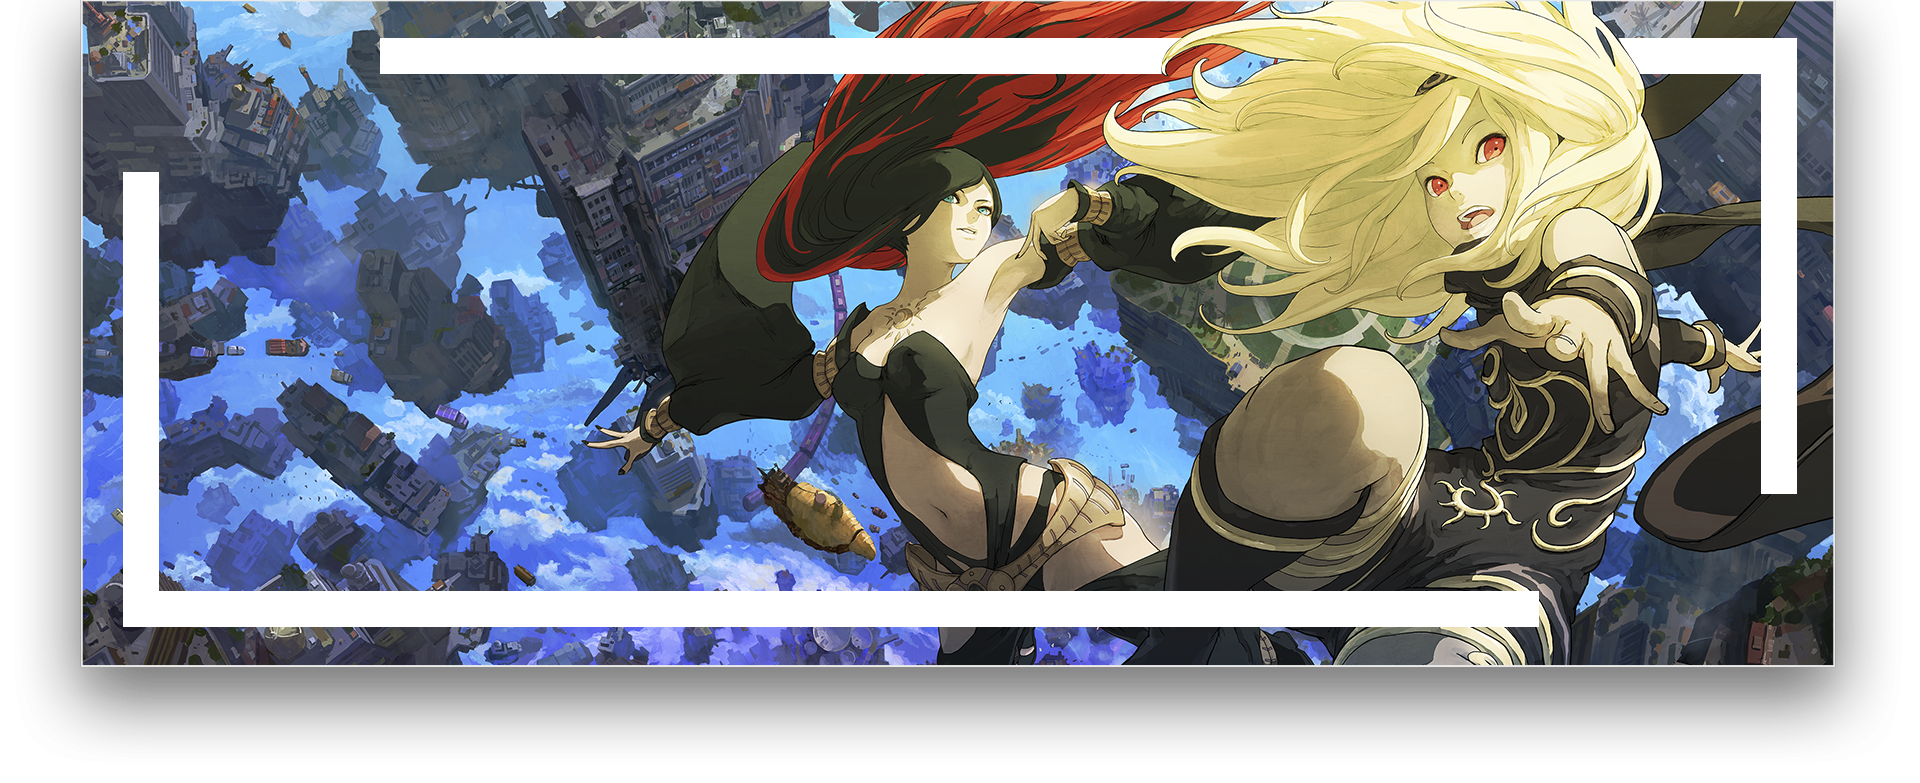 Gravity Rush 2 key art